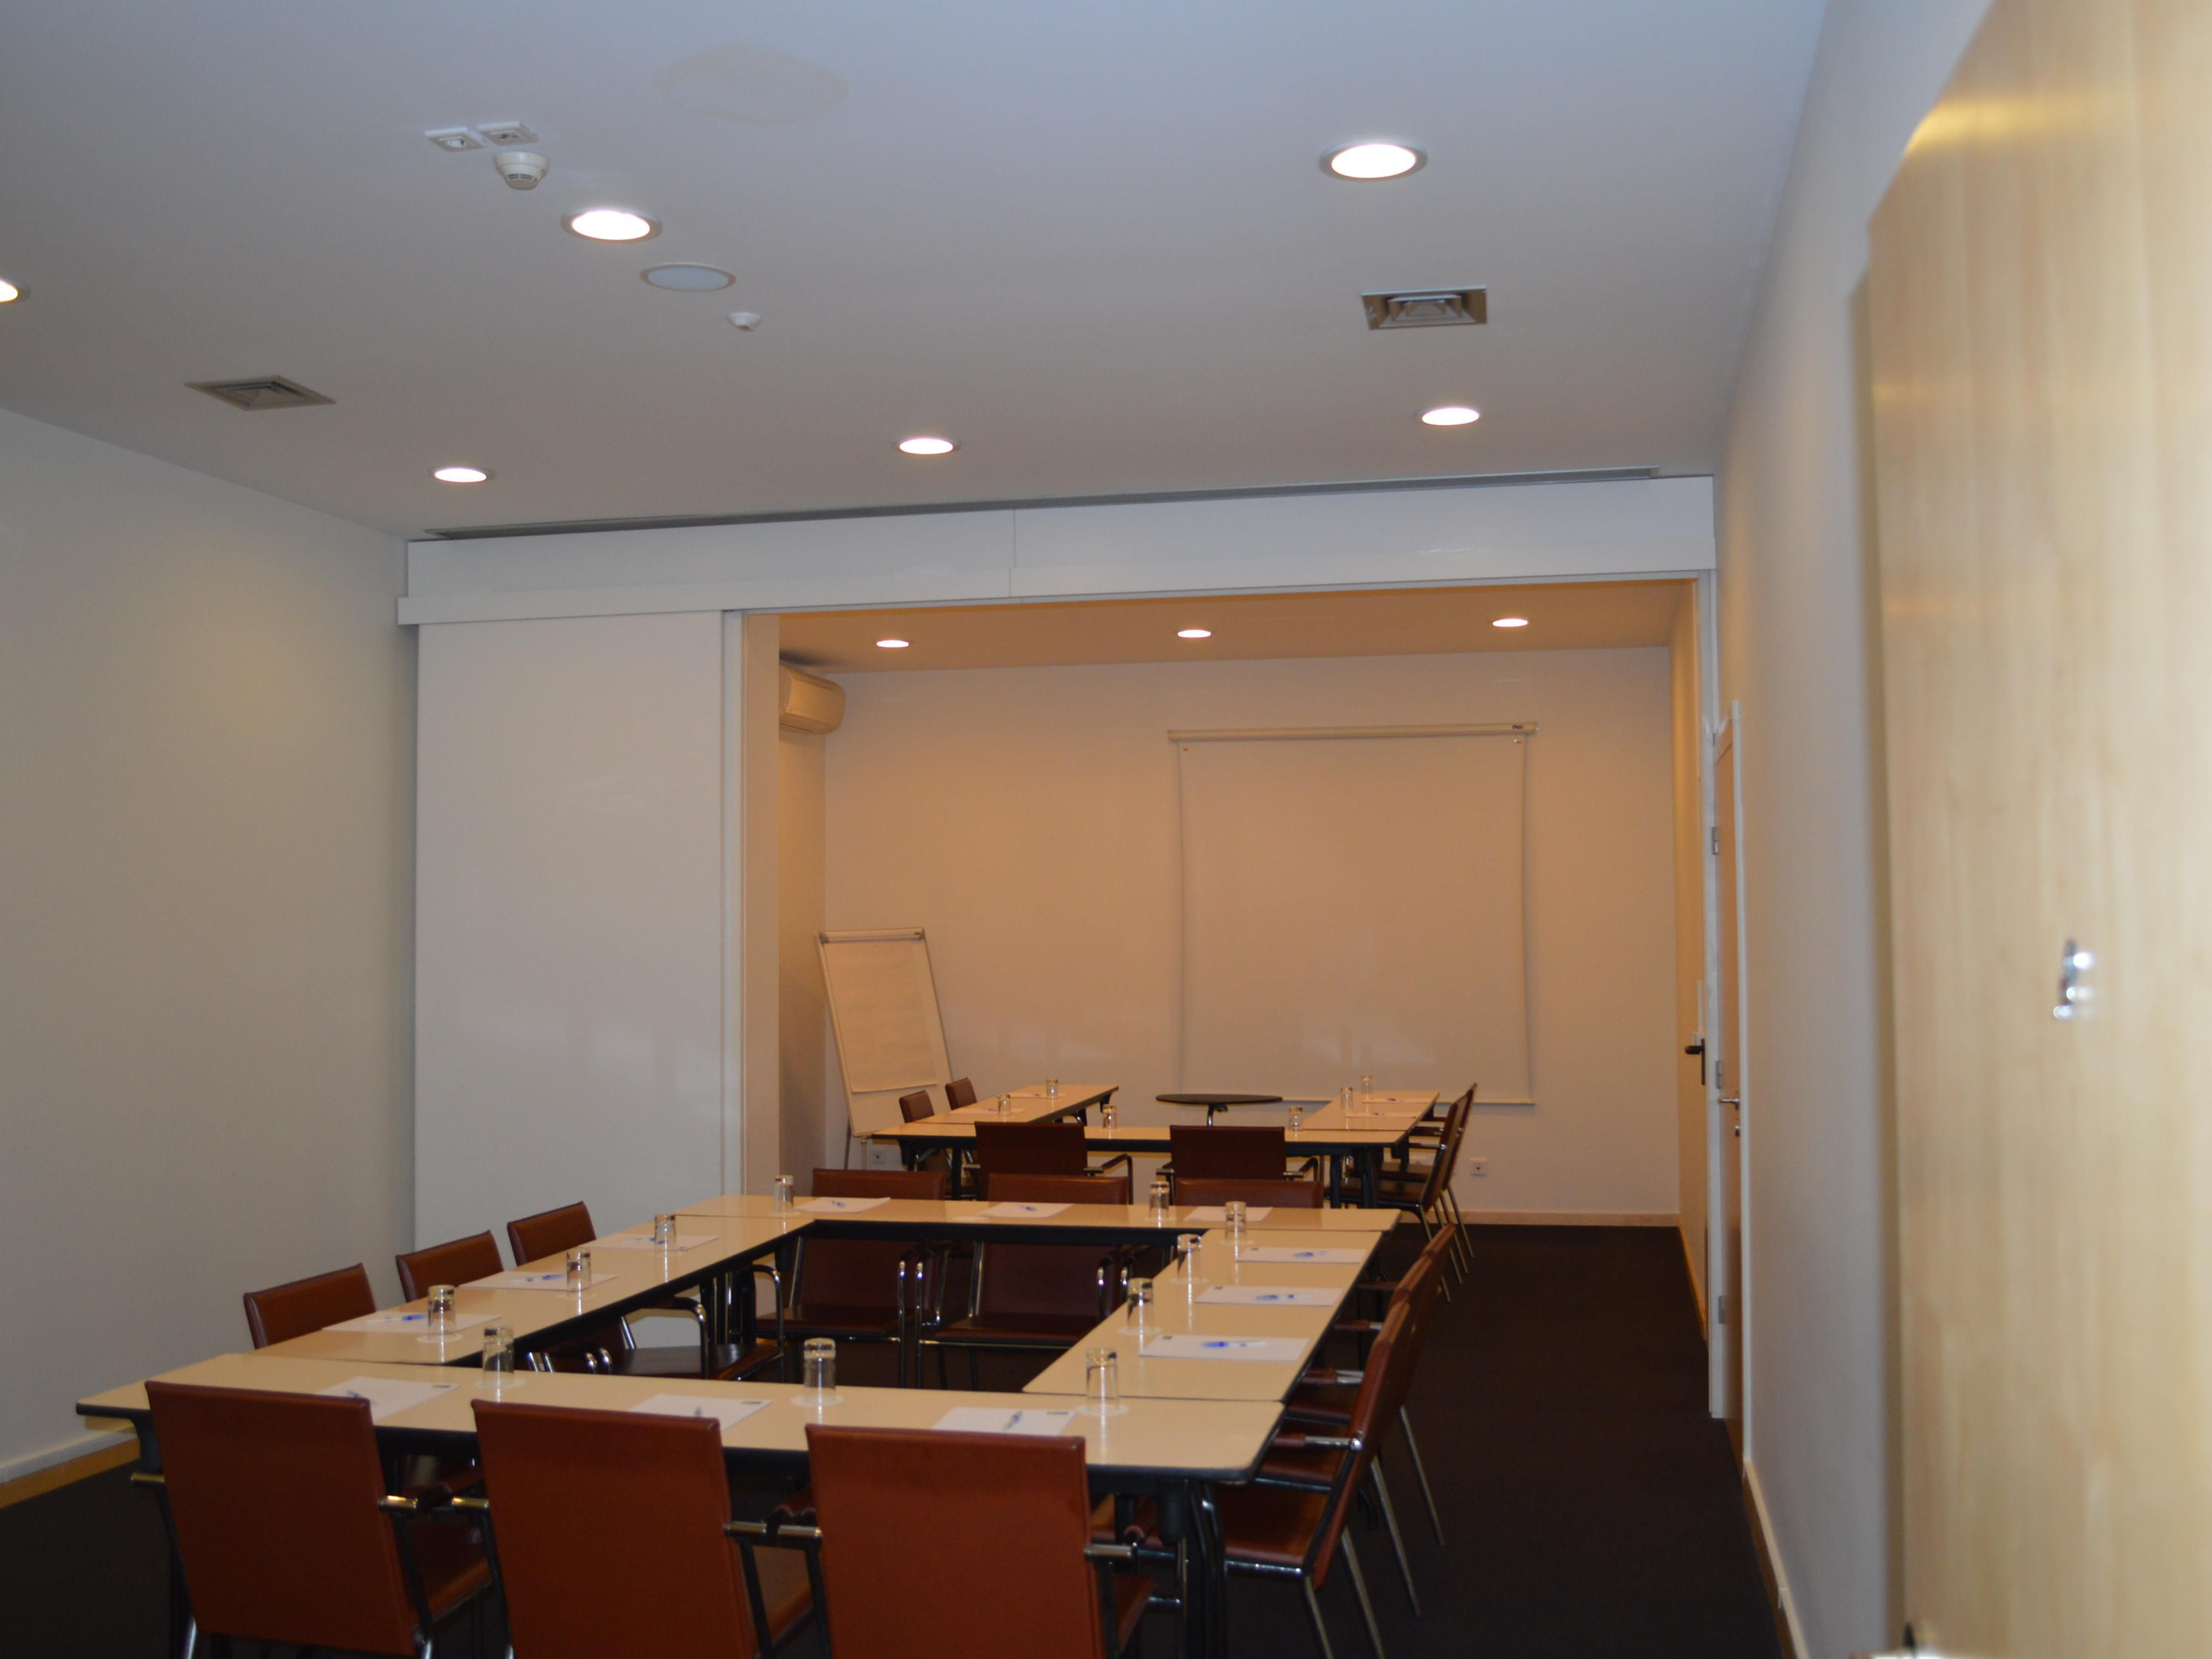 Meeting Room - Have your meeting without leaving the hotel